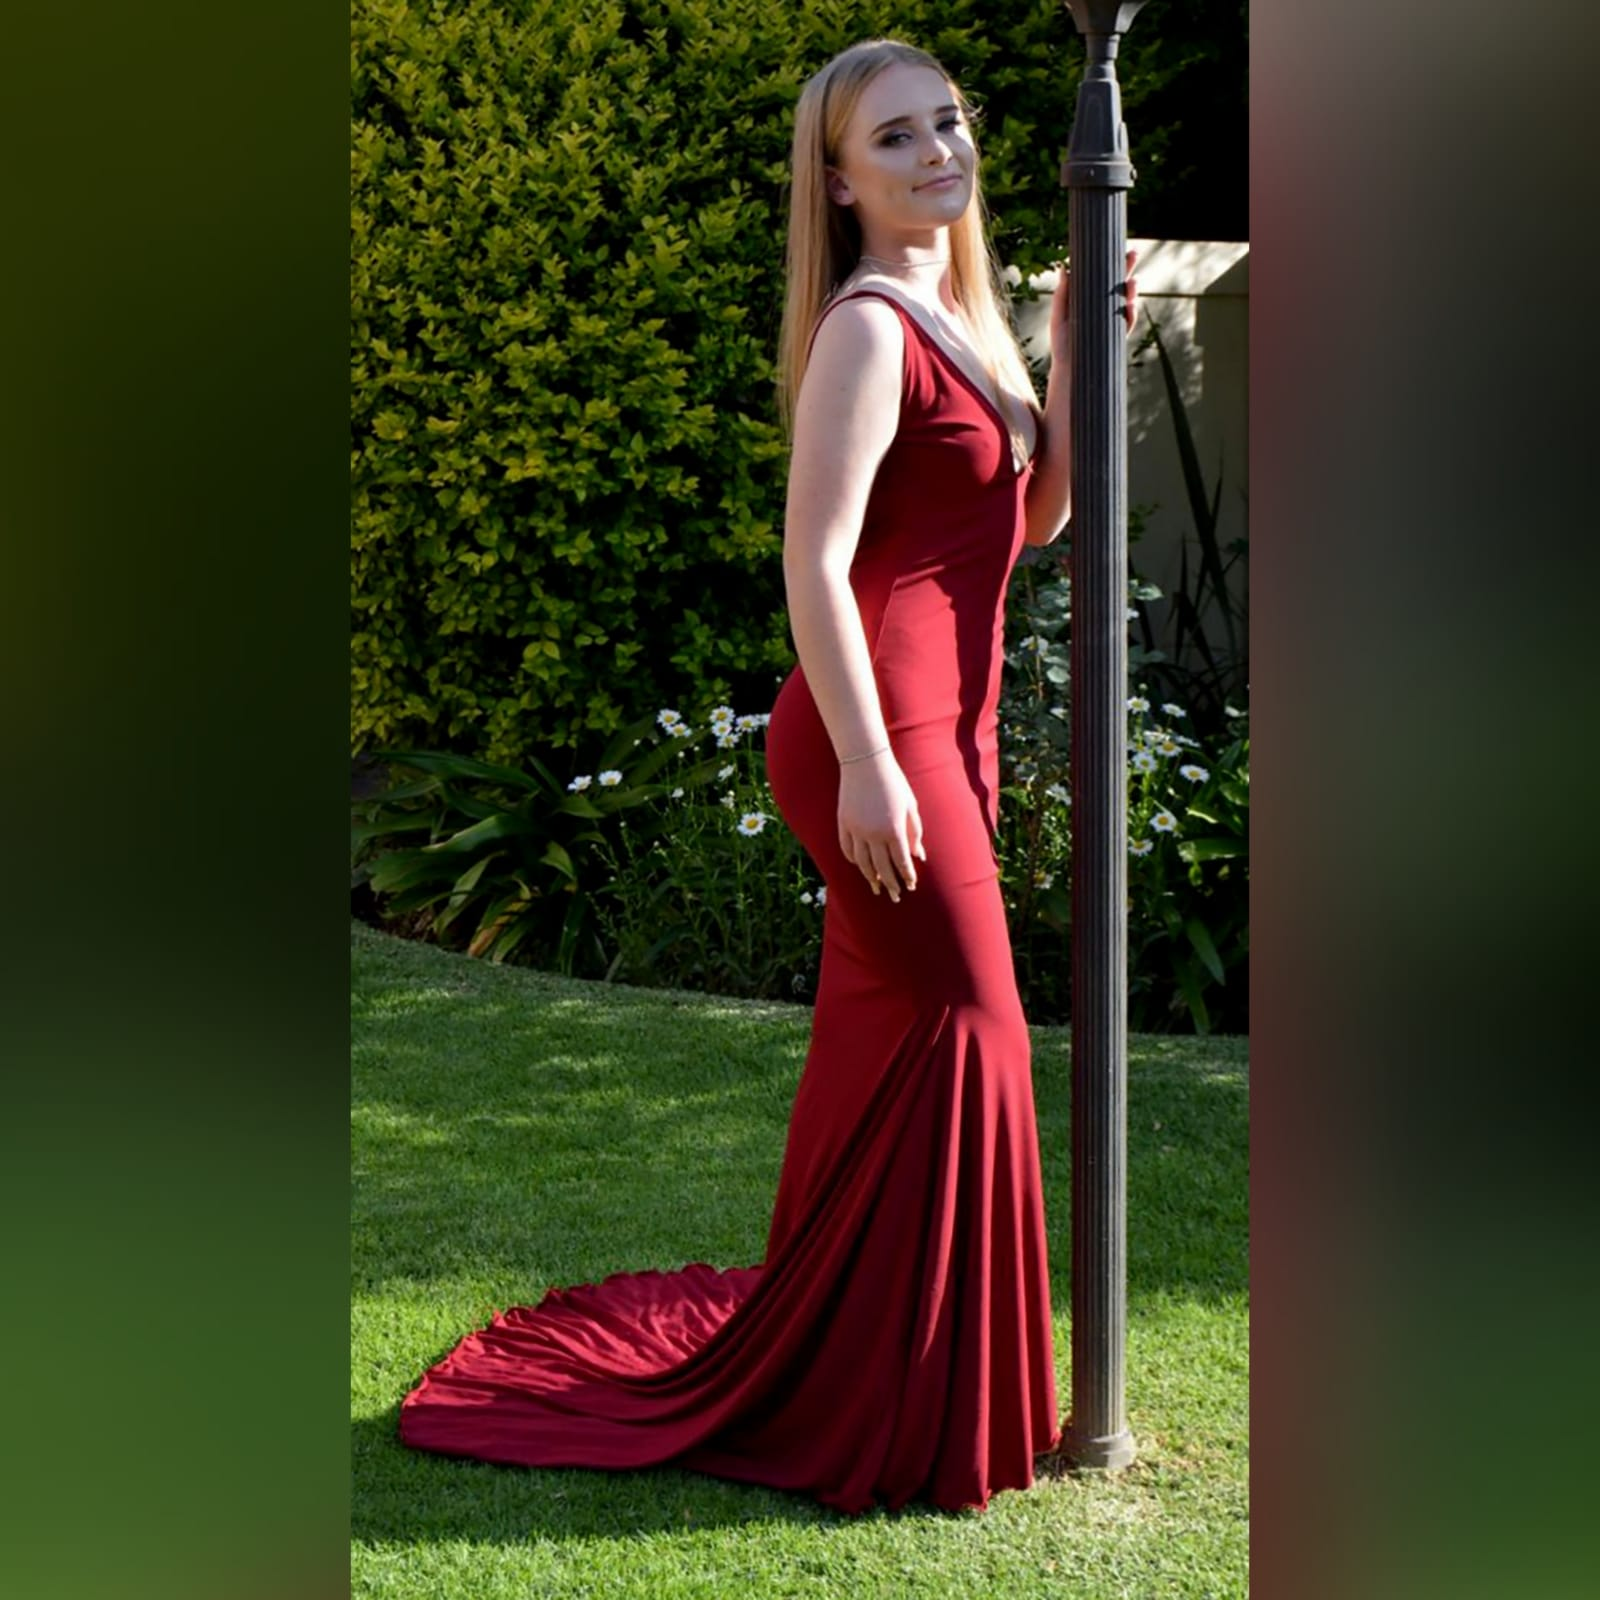 Deep red plunging neckline prom dress 3 deep red plunging neckline prom dress, low open back with thin should straps and a long train.